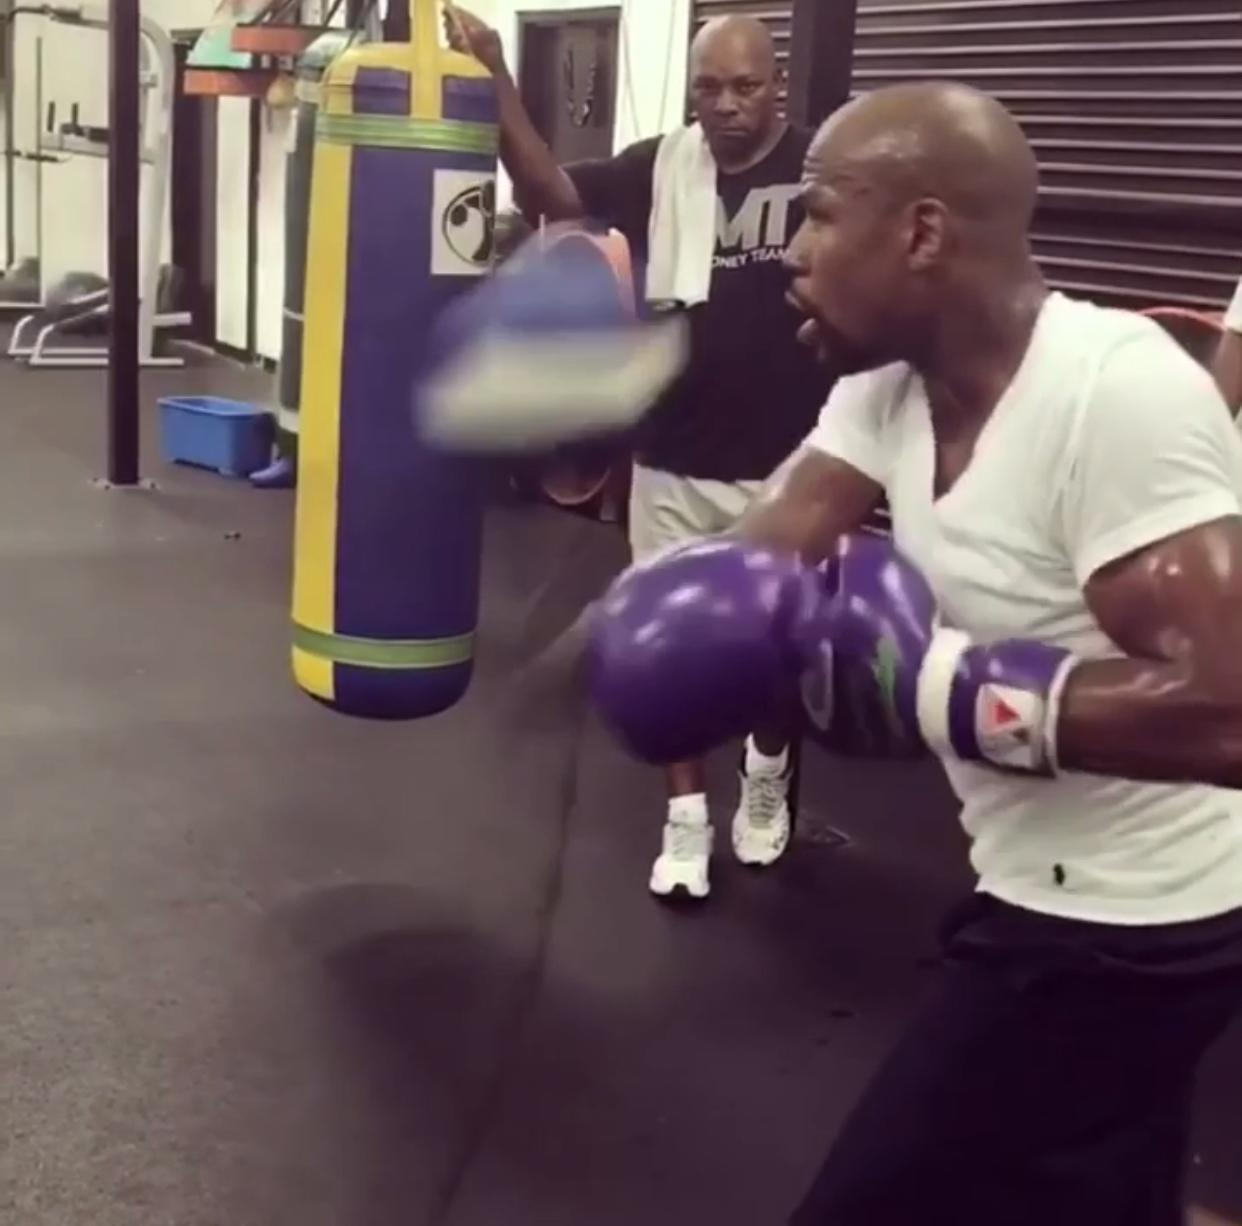 Floyd Mayweather shared a video of himself preparing for his MMA debut